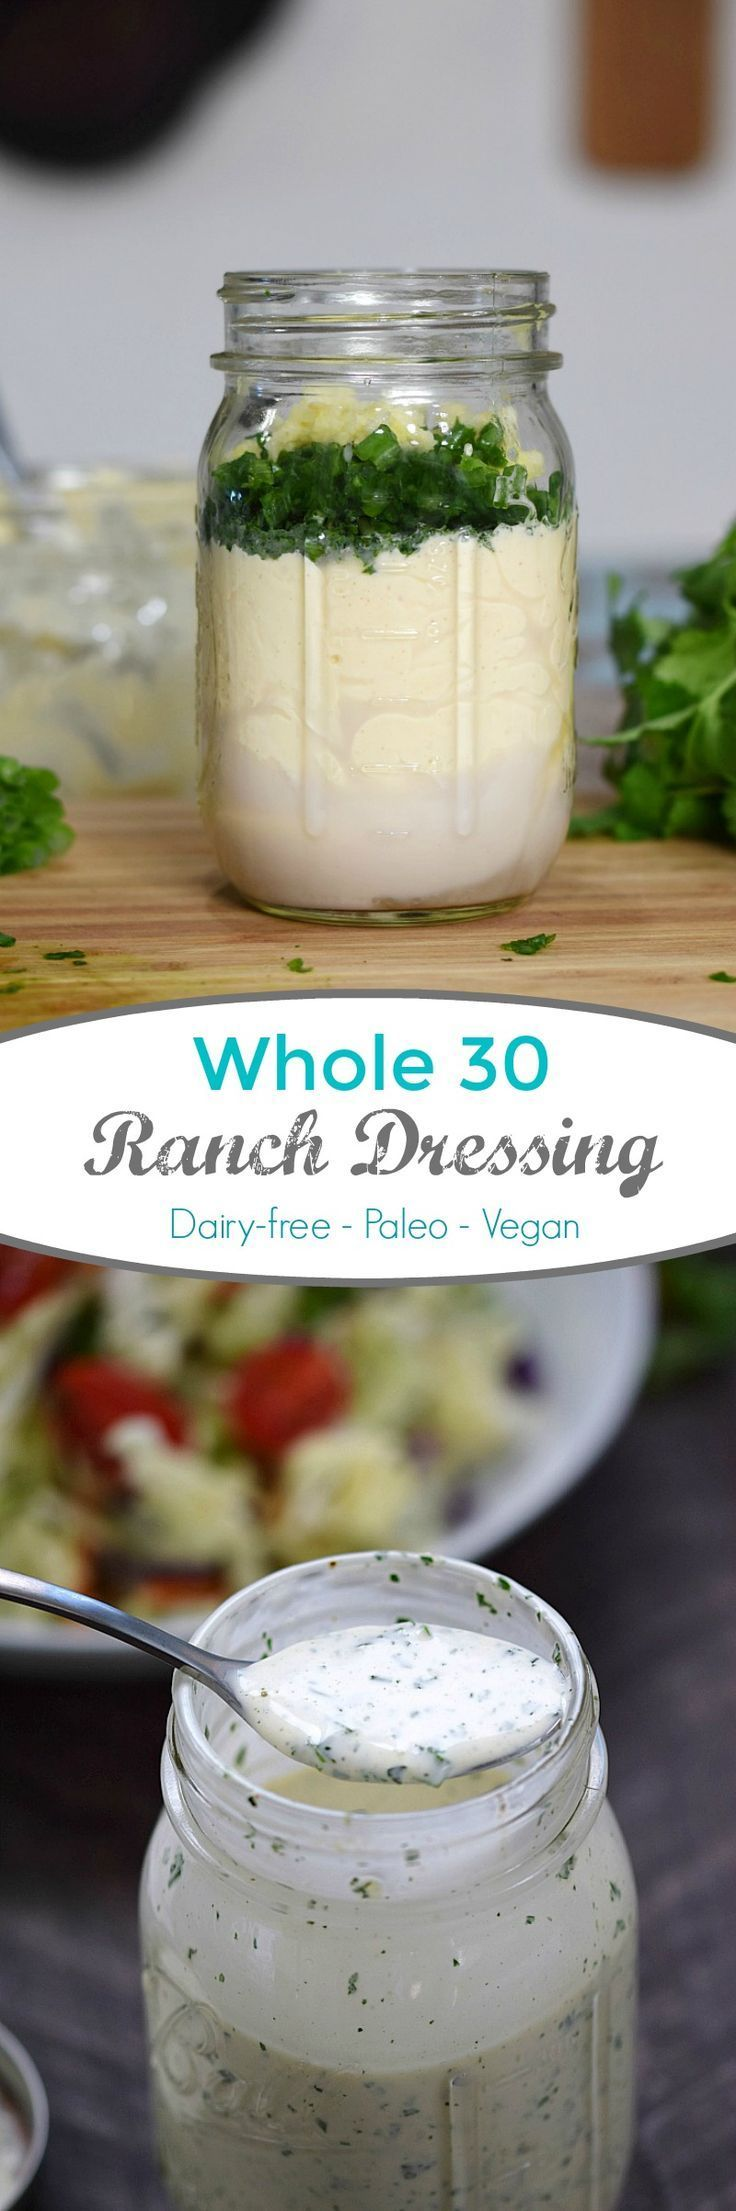 This is the best Whole 30 Ranch Dressing ever. Fresh and delicious flavor, and only takes minutes to make | http://cookingwithcurls.com